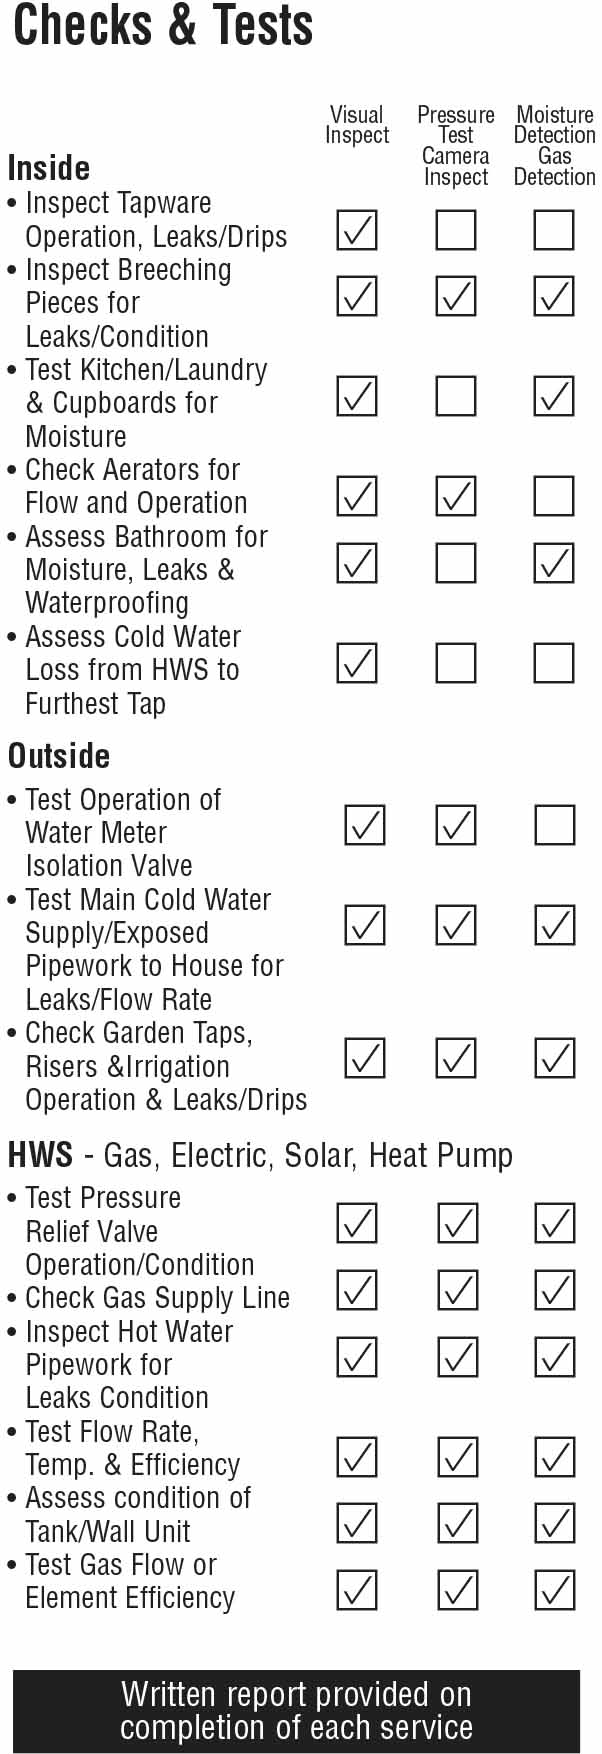 Plumbing & Hot Water Service Checks & Tests